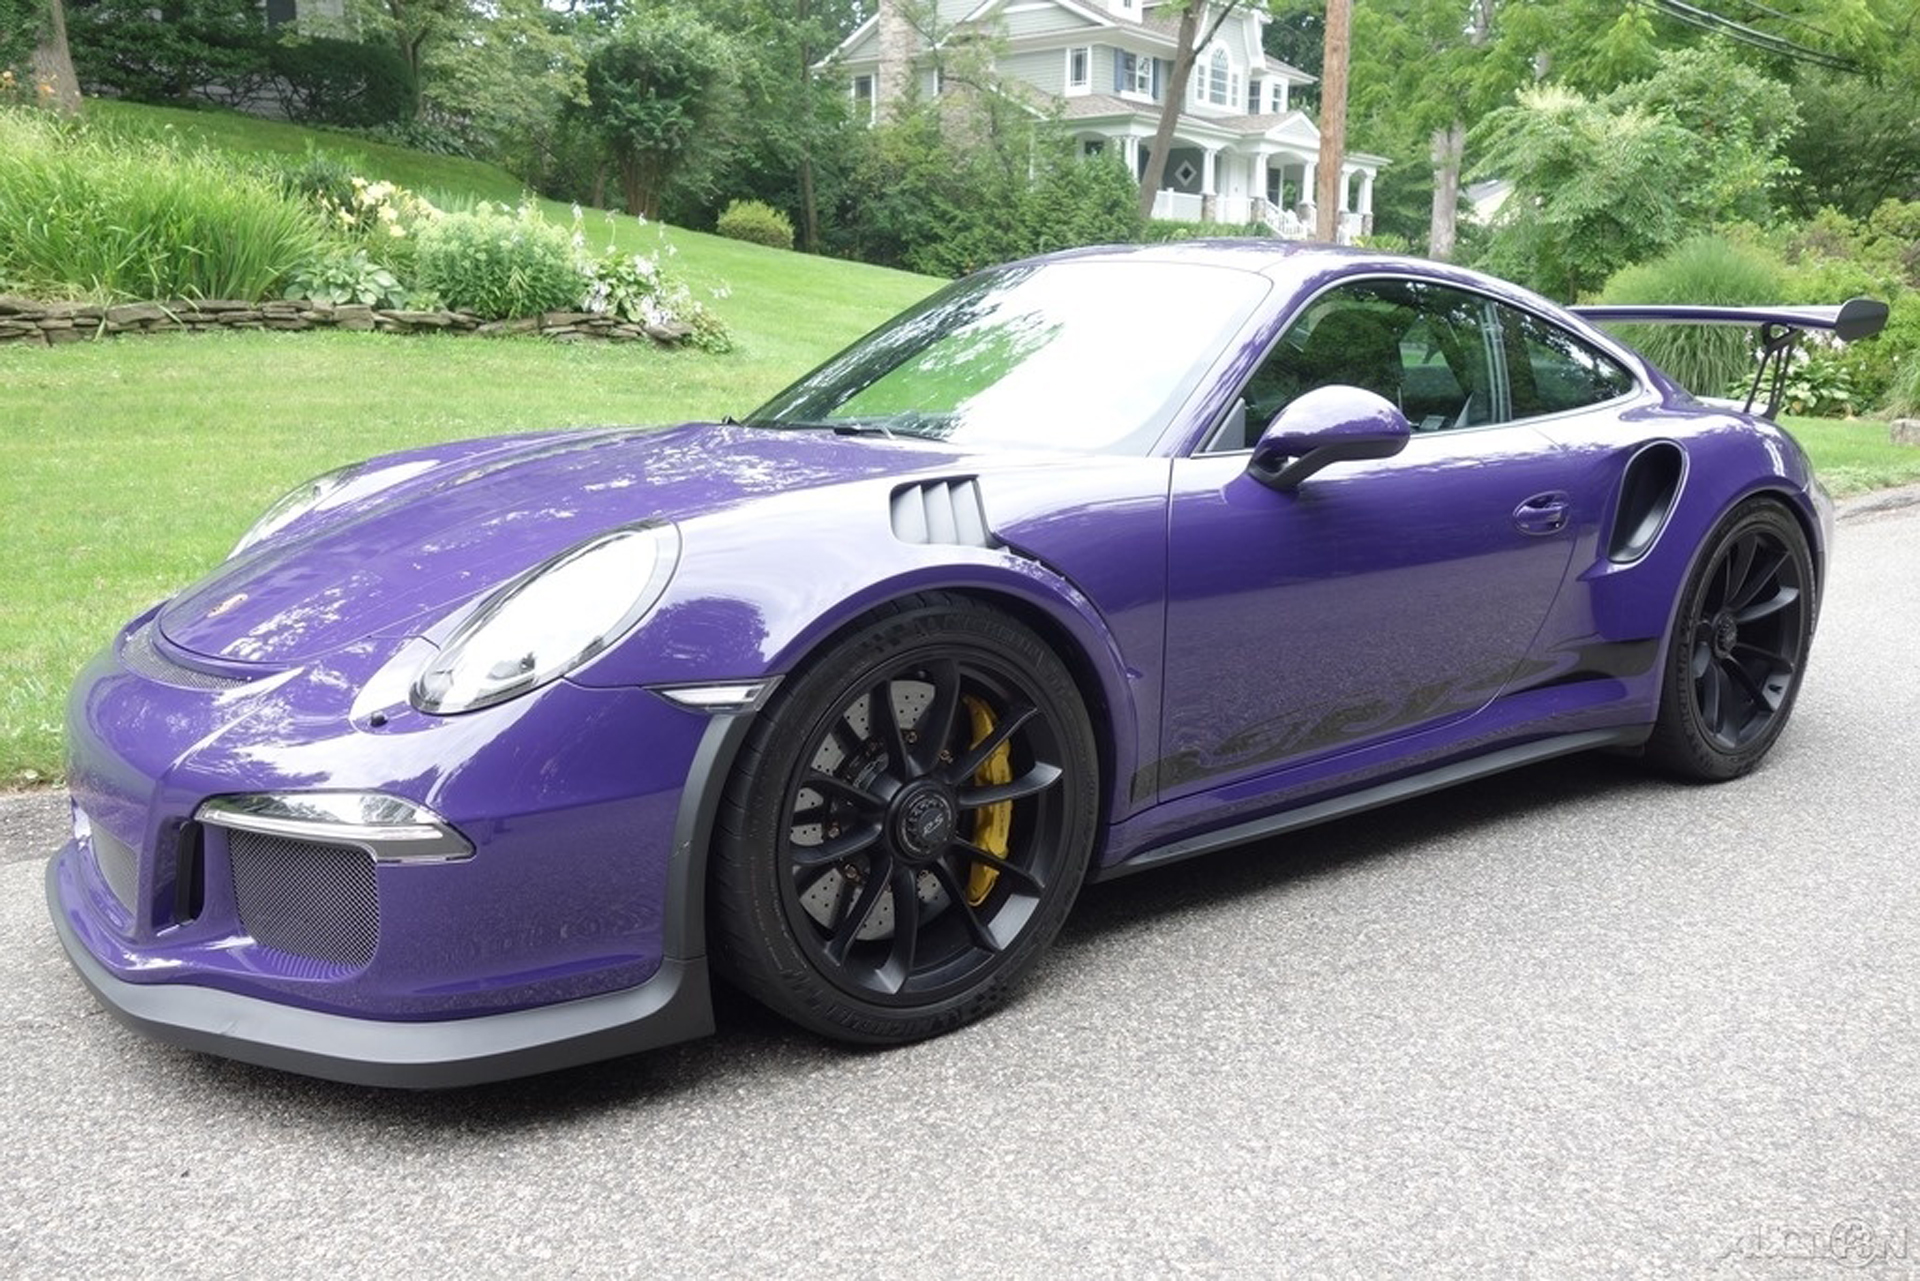 Pre Owned Cars >> For Sale Porsche 911 GT3 RS ULTRAVIOLET – PORSCHE LONG ISLAND | Used & Certified Pre Owned Cars ...